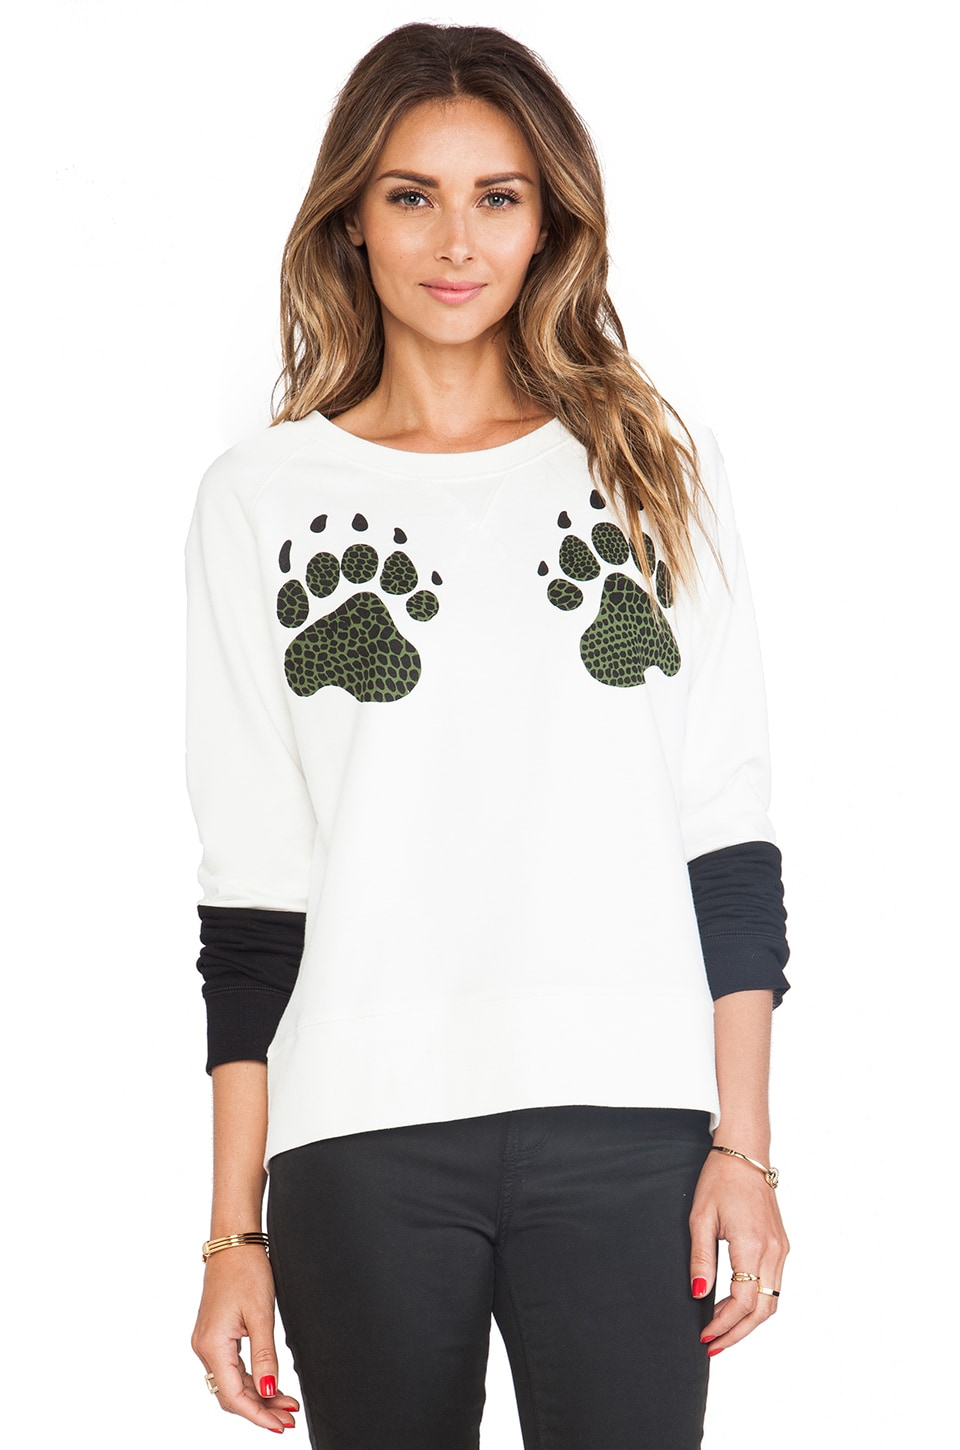 Tibi Paw Sweatshirt in Ivory Multi